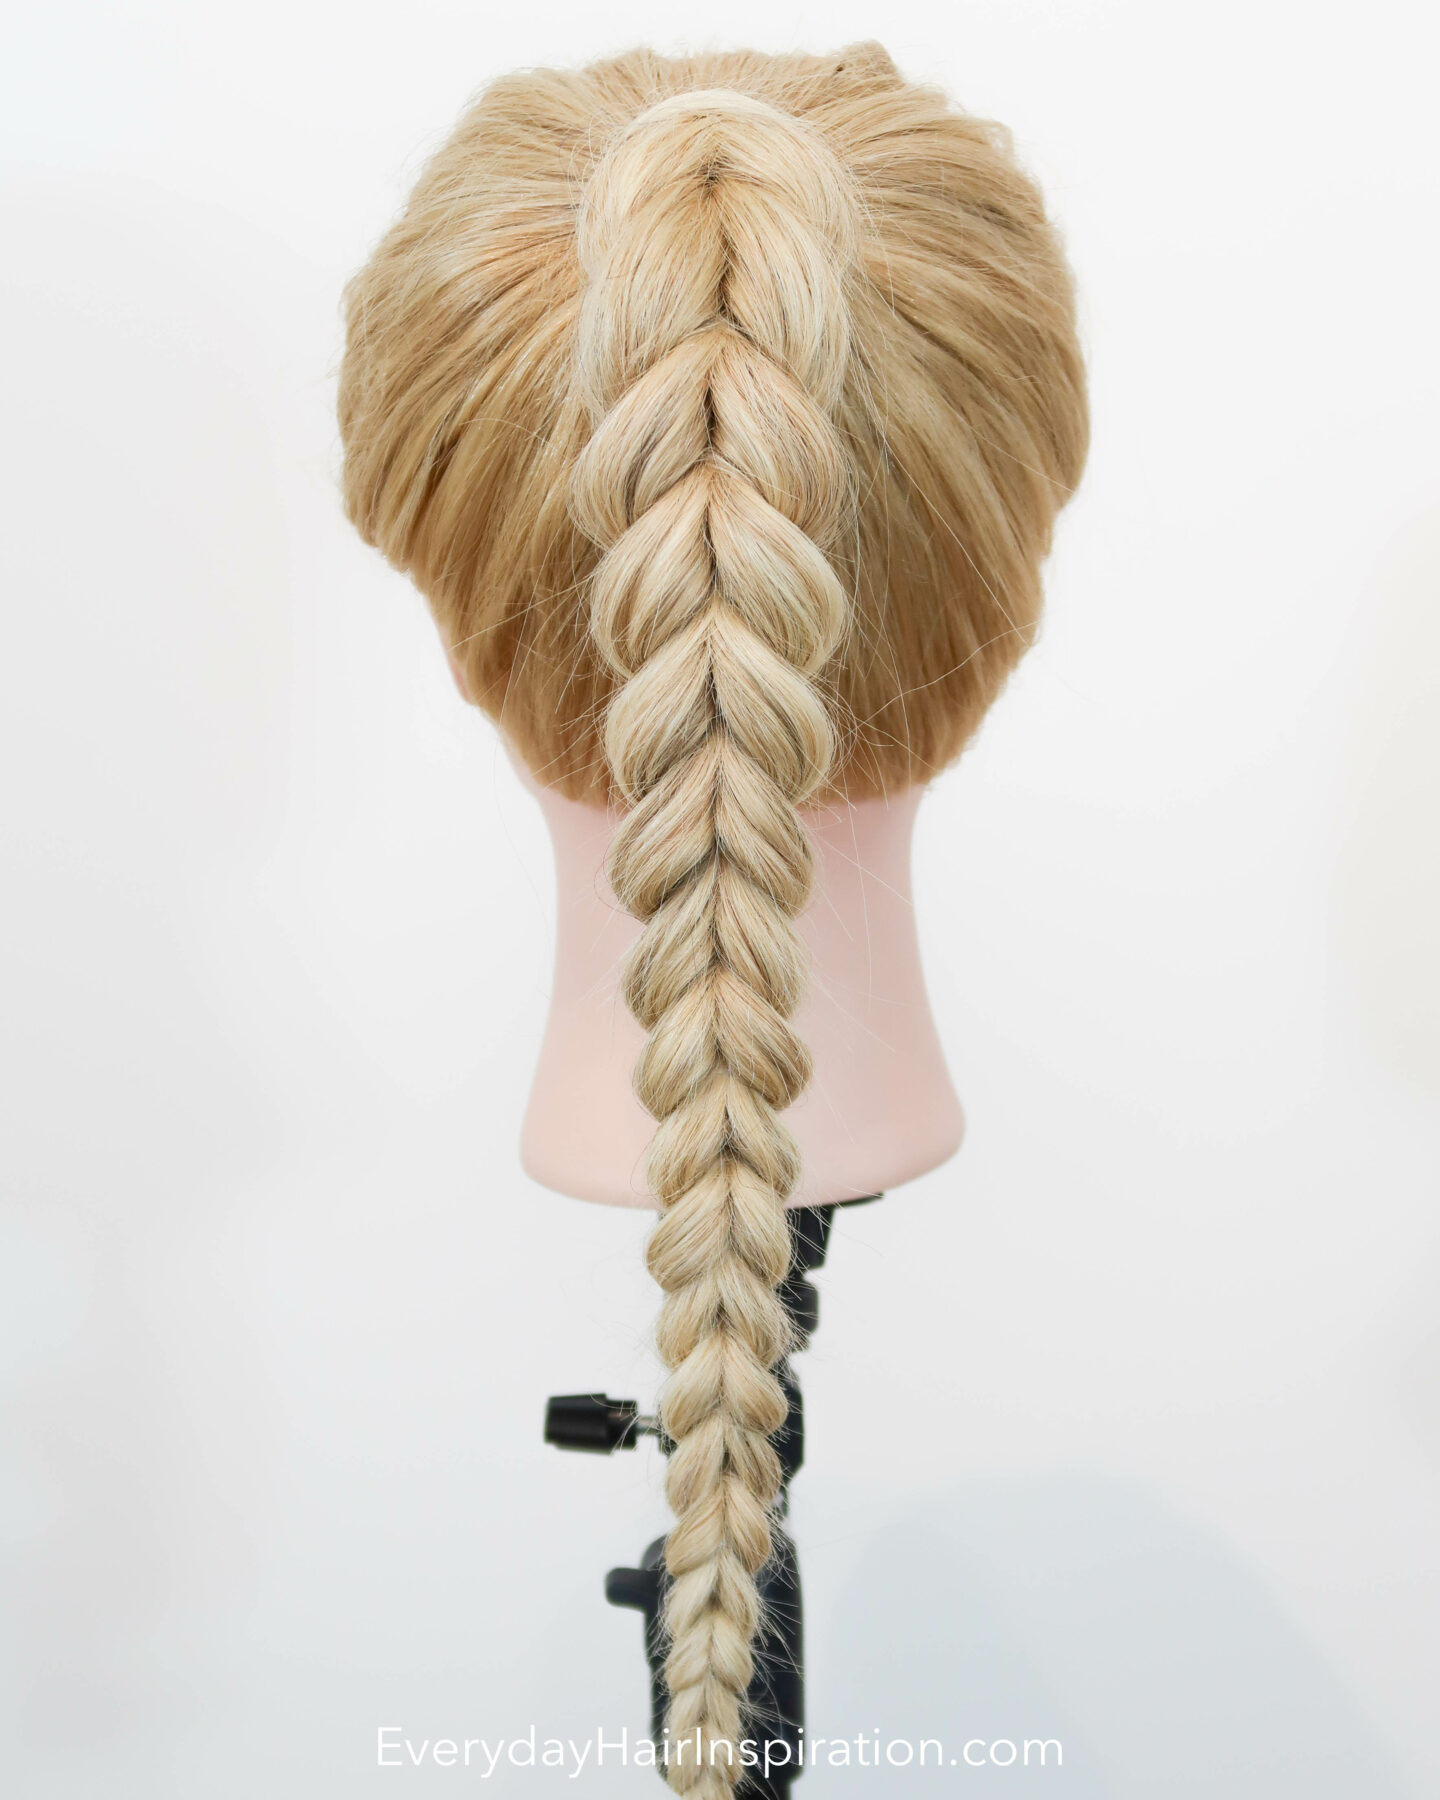 Blonde hairdresser doll seen from the back with a pull through braid in a high ponytail.